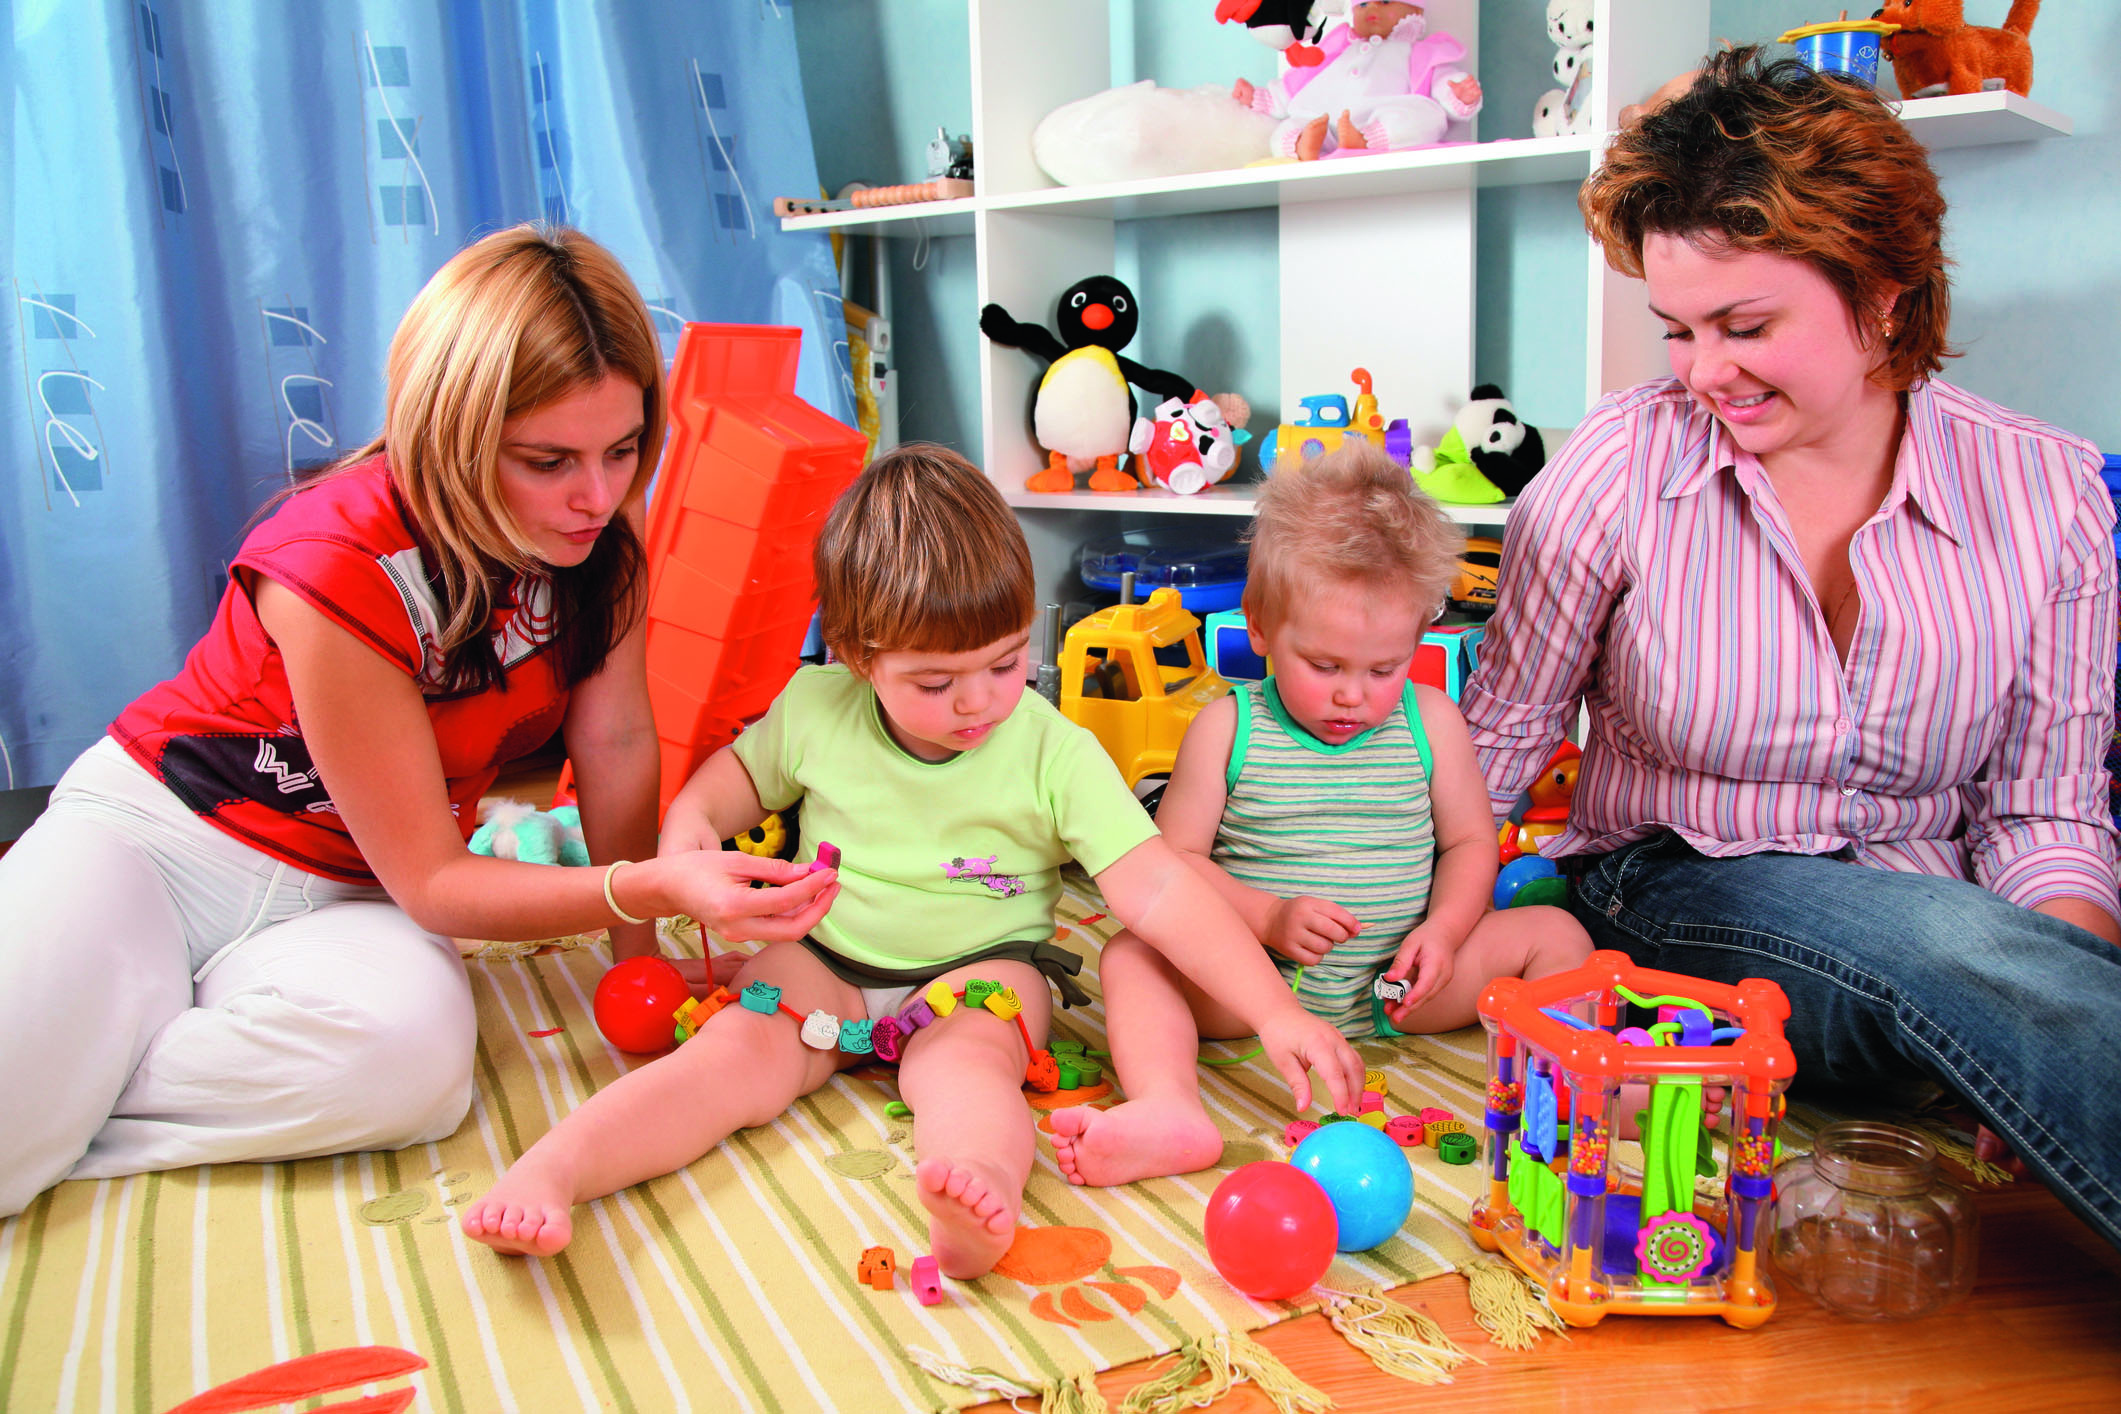 Nursery child care